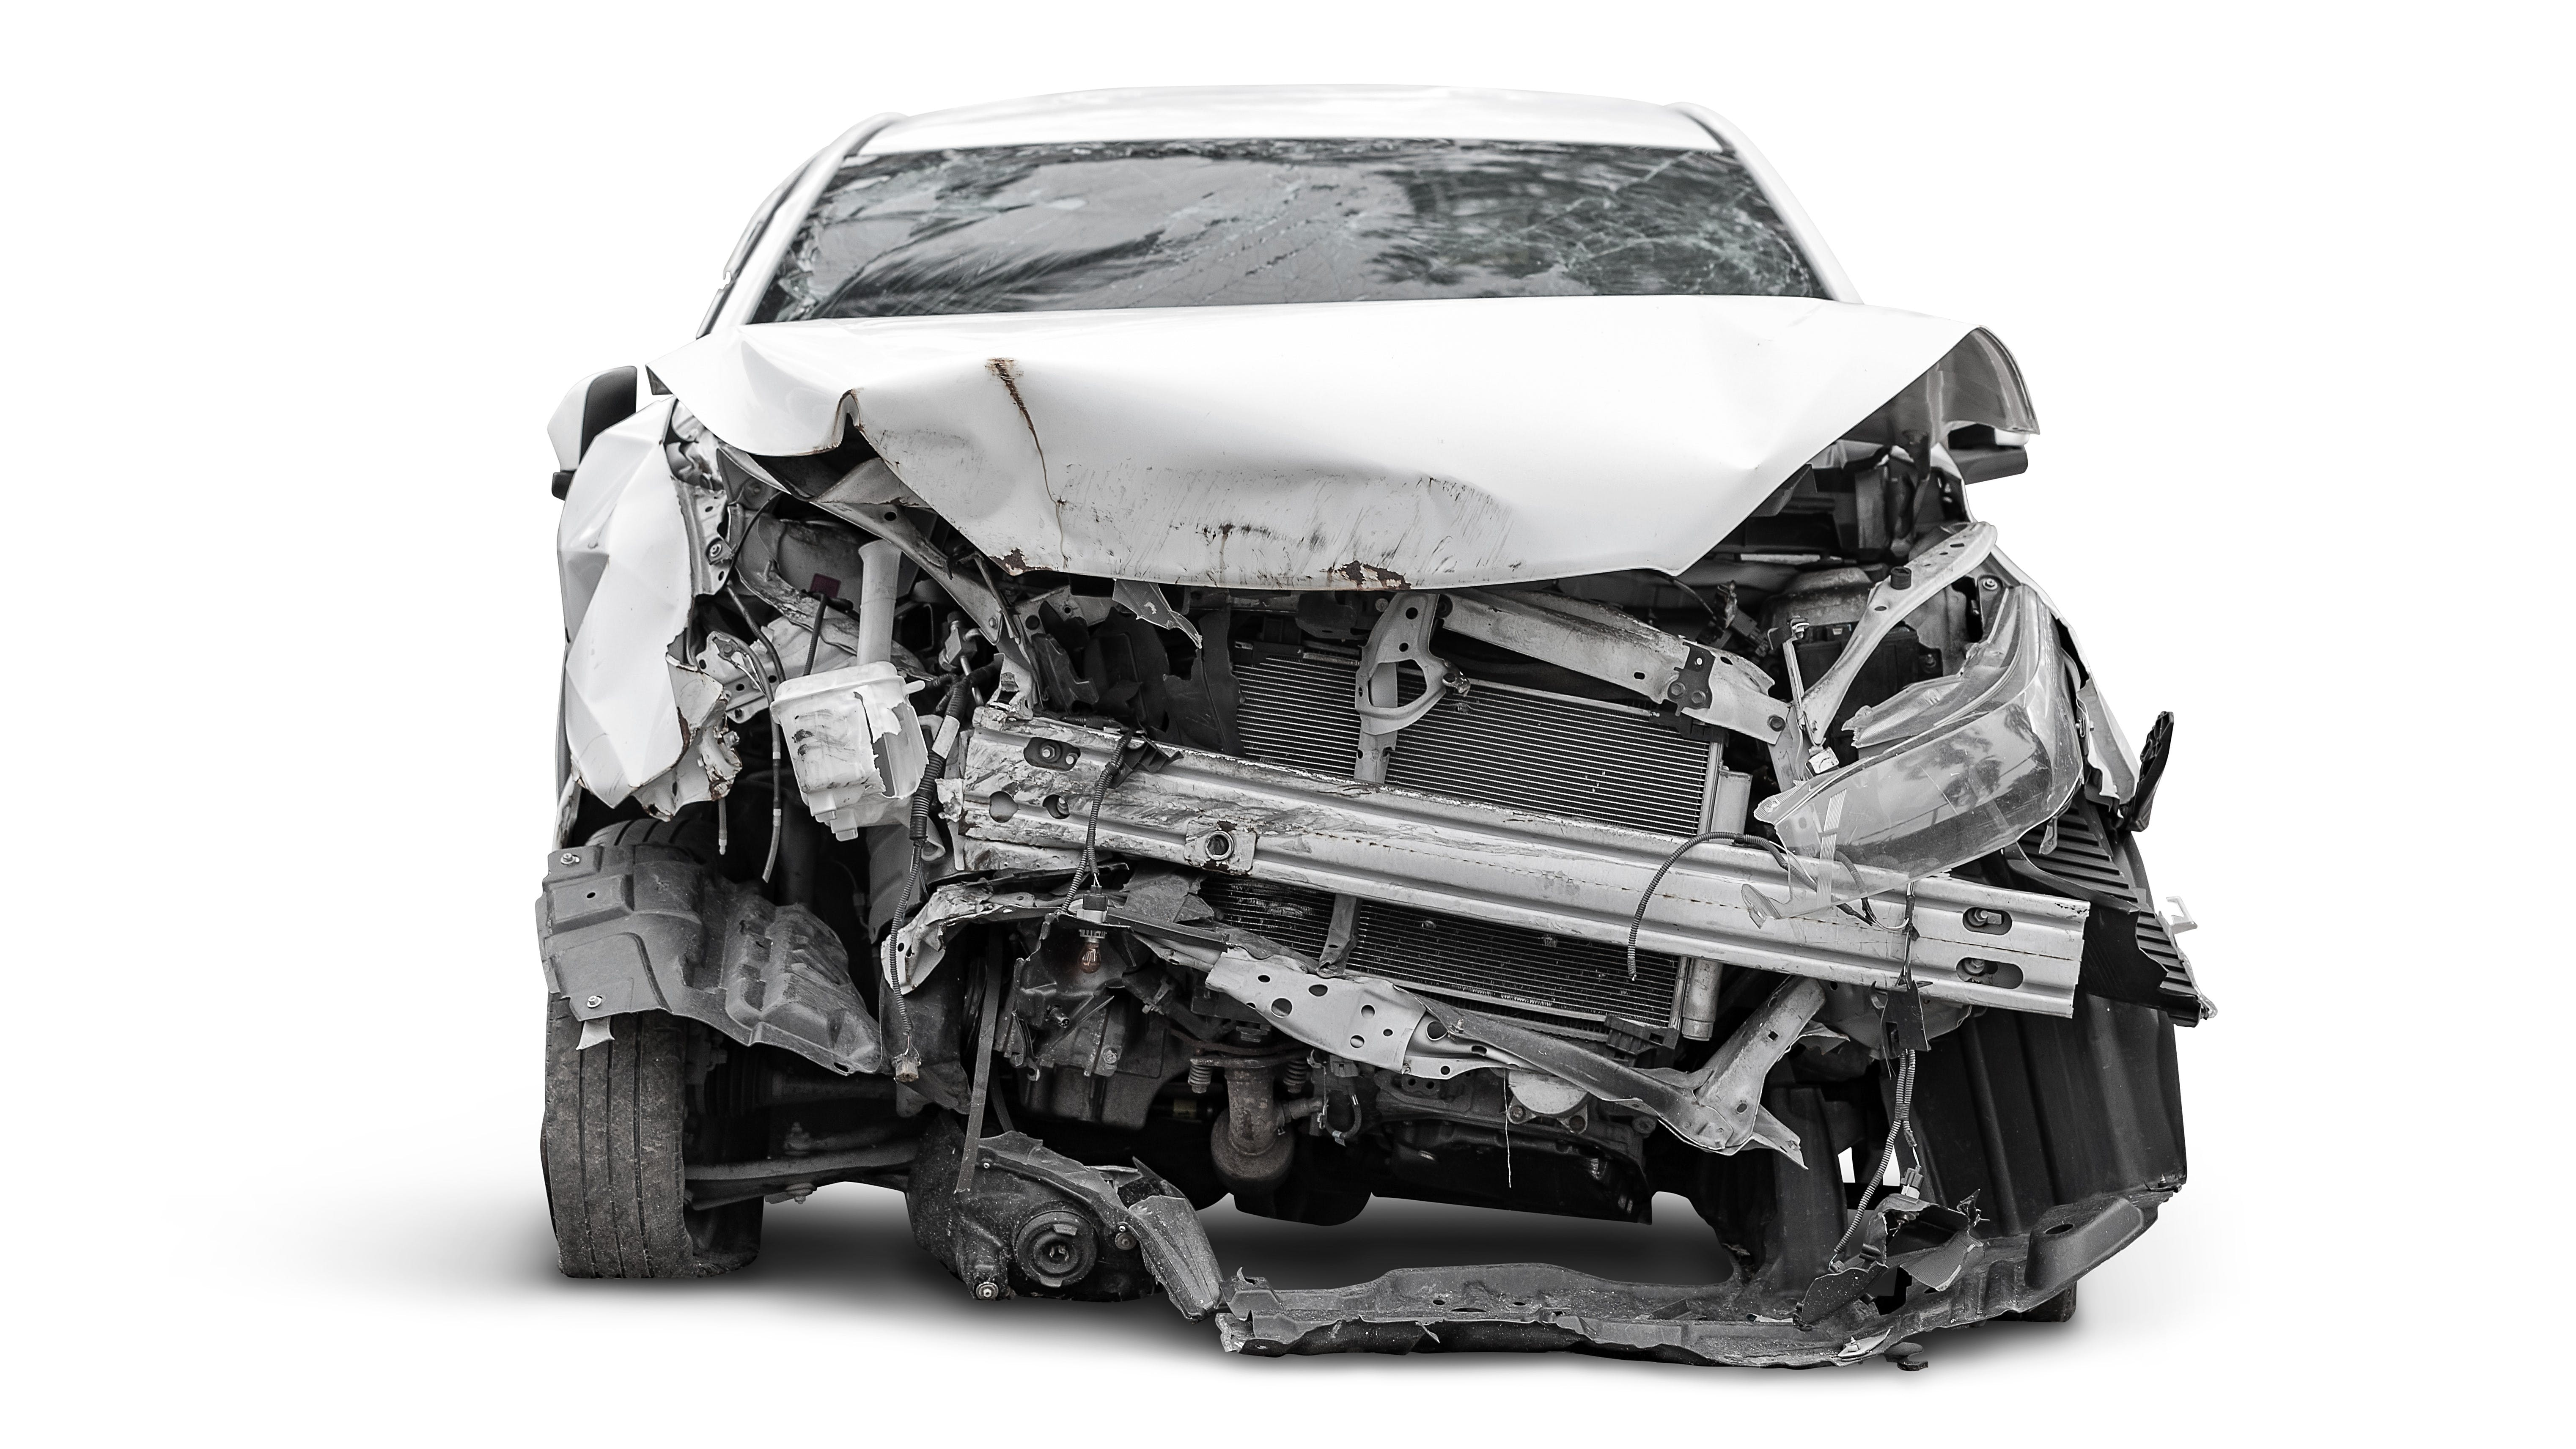 Car Frame Damage and Other Structural Damage